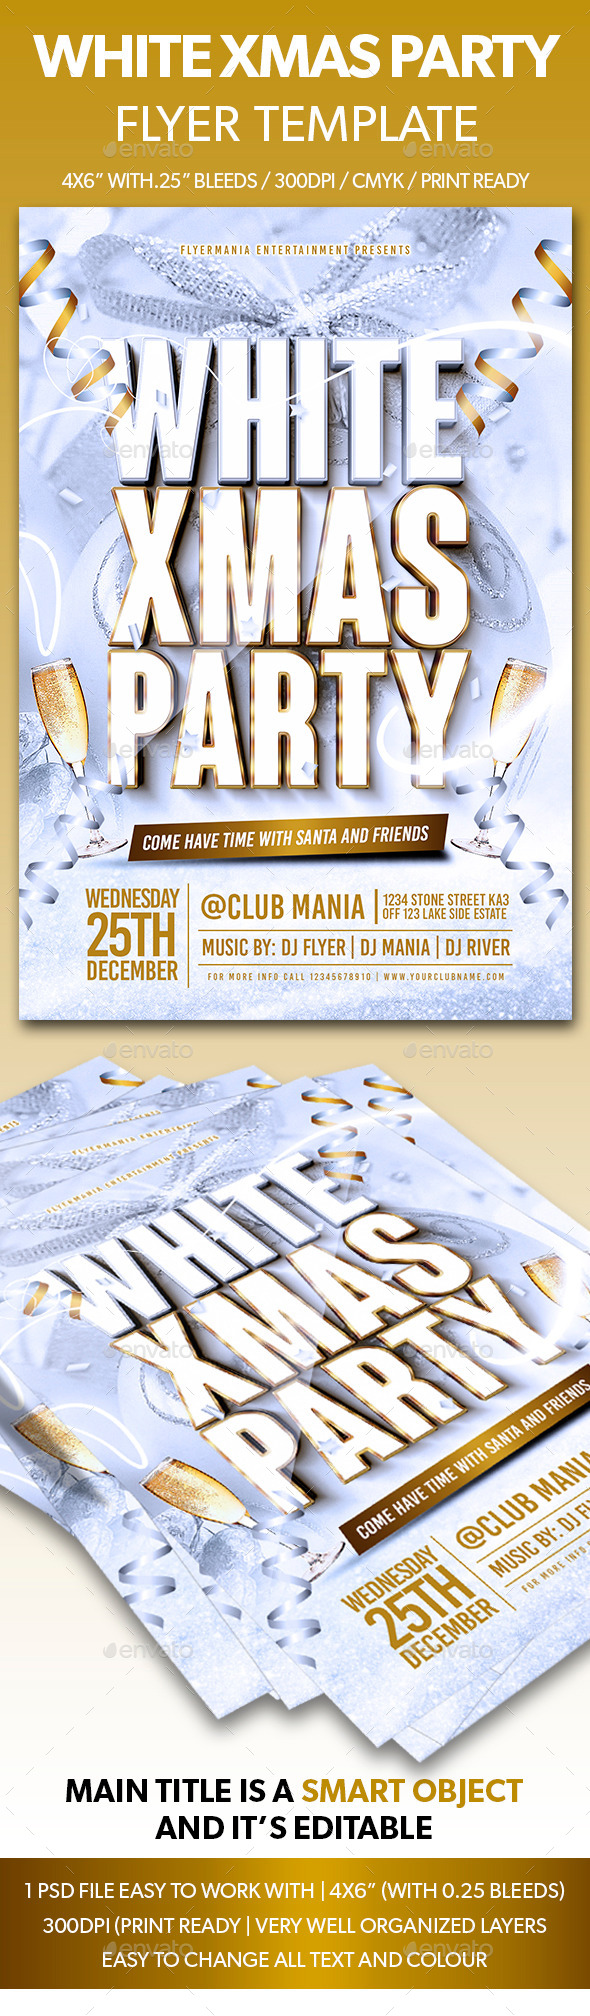 White Xmas Party Flyer Template - Holidays Events